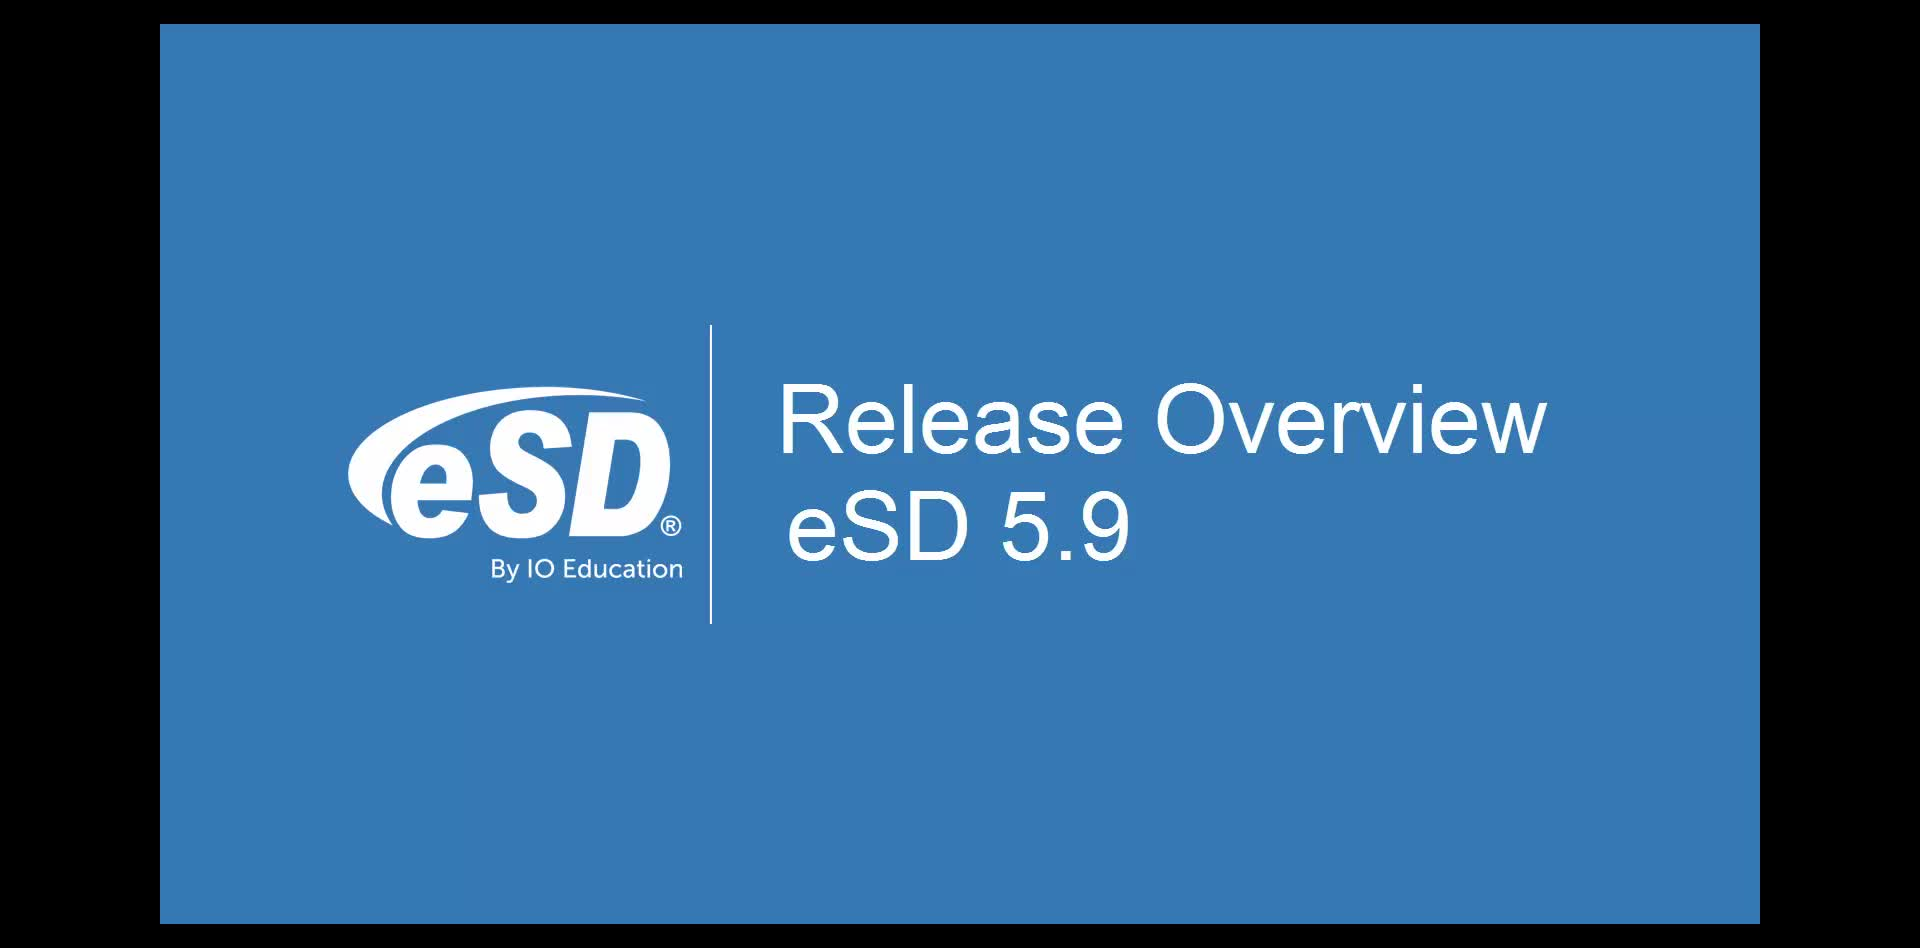 eSD 5.9 Release Overview